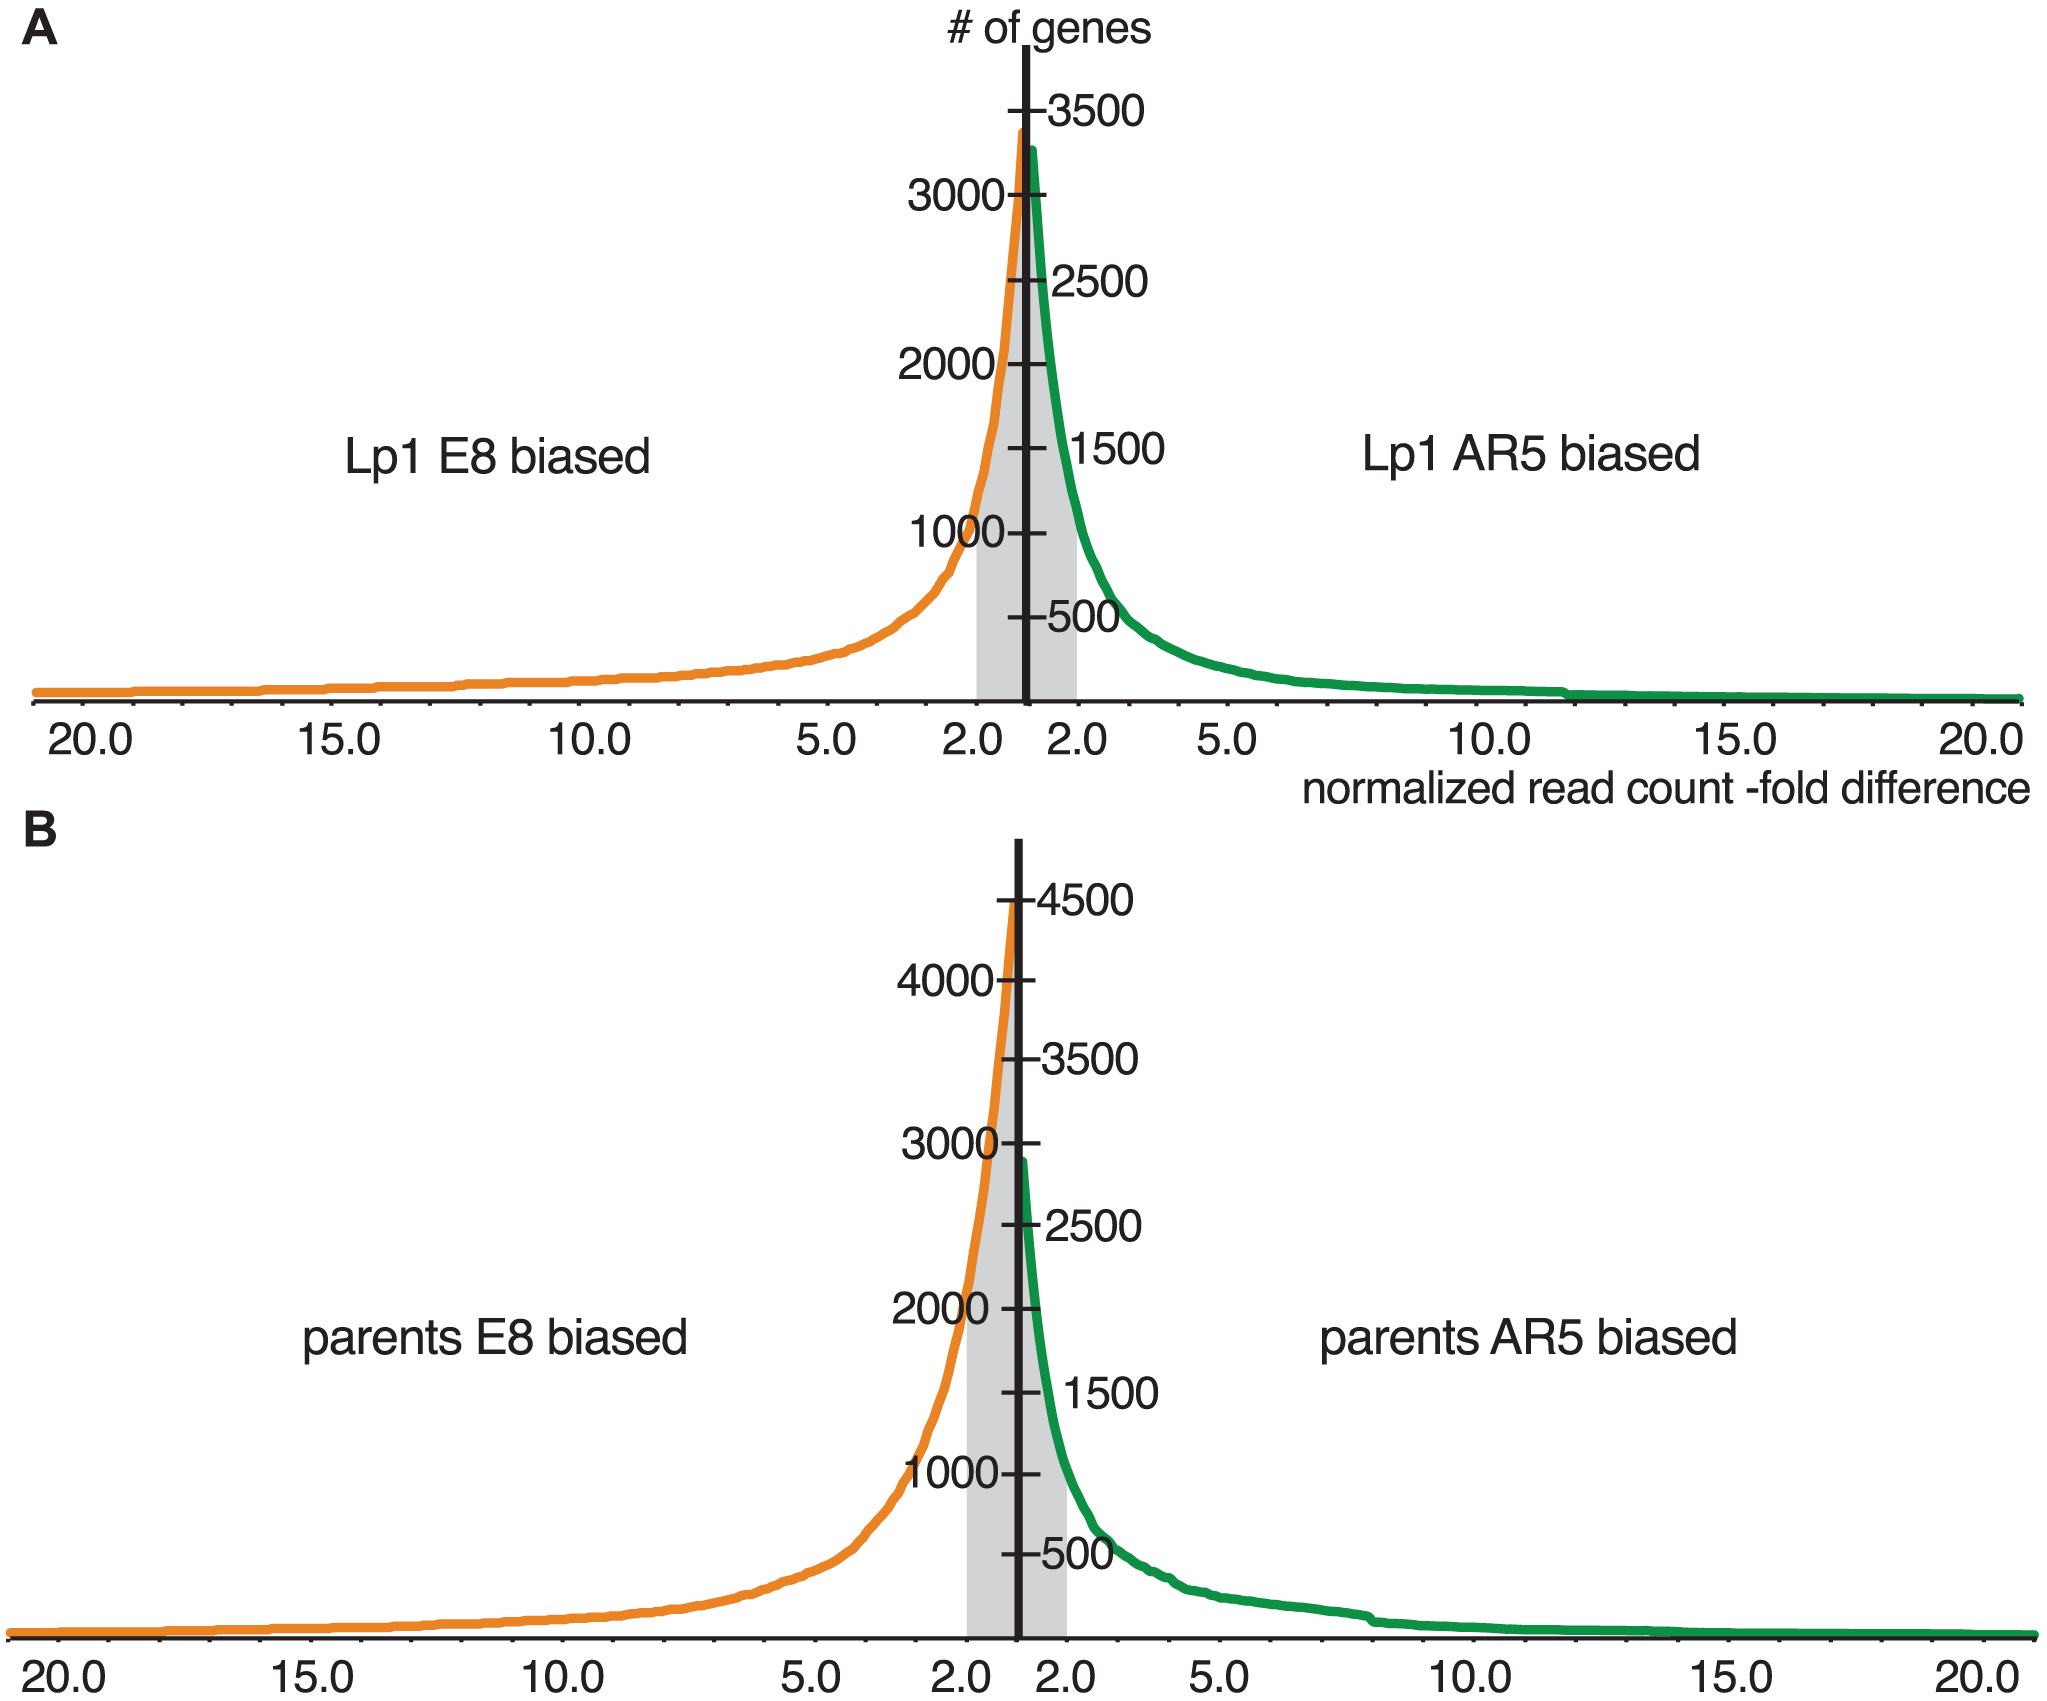 Cumulative distributions of gene expression ratios for Lp1 and parents.